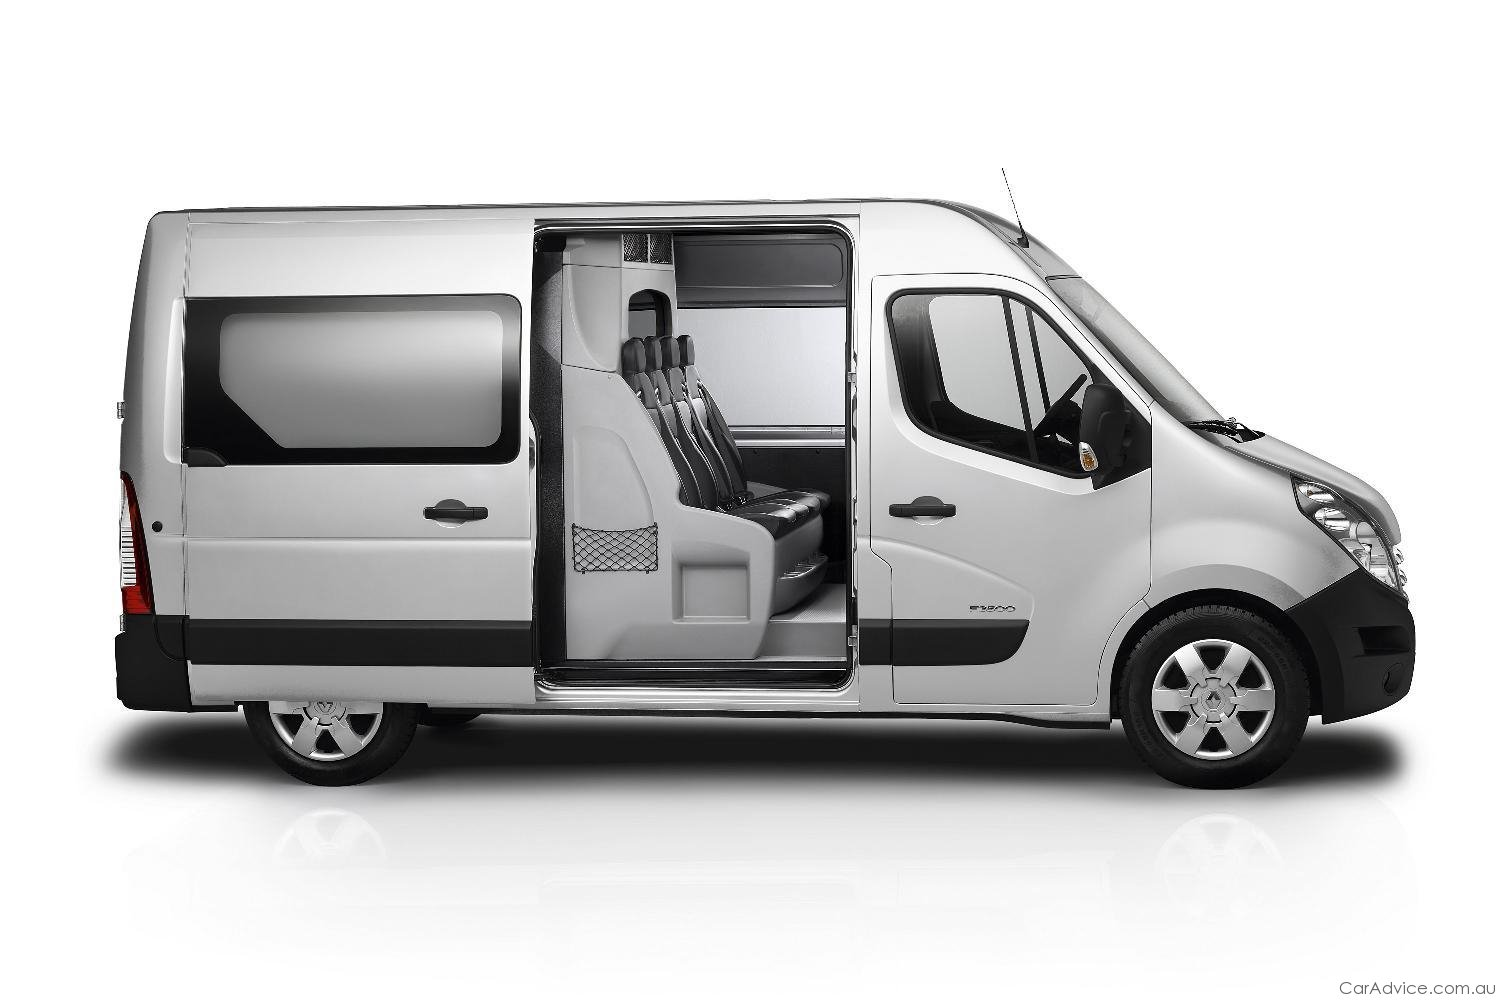 renault master renault trafic and renault kangoo van. Black Bedroom Furniture Sets. Home Design Ideas